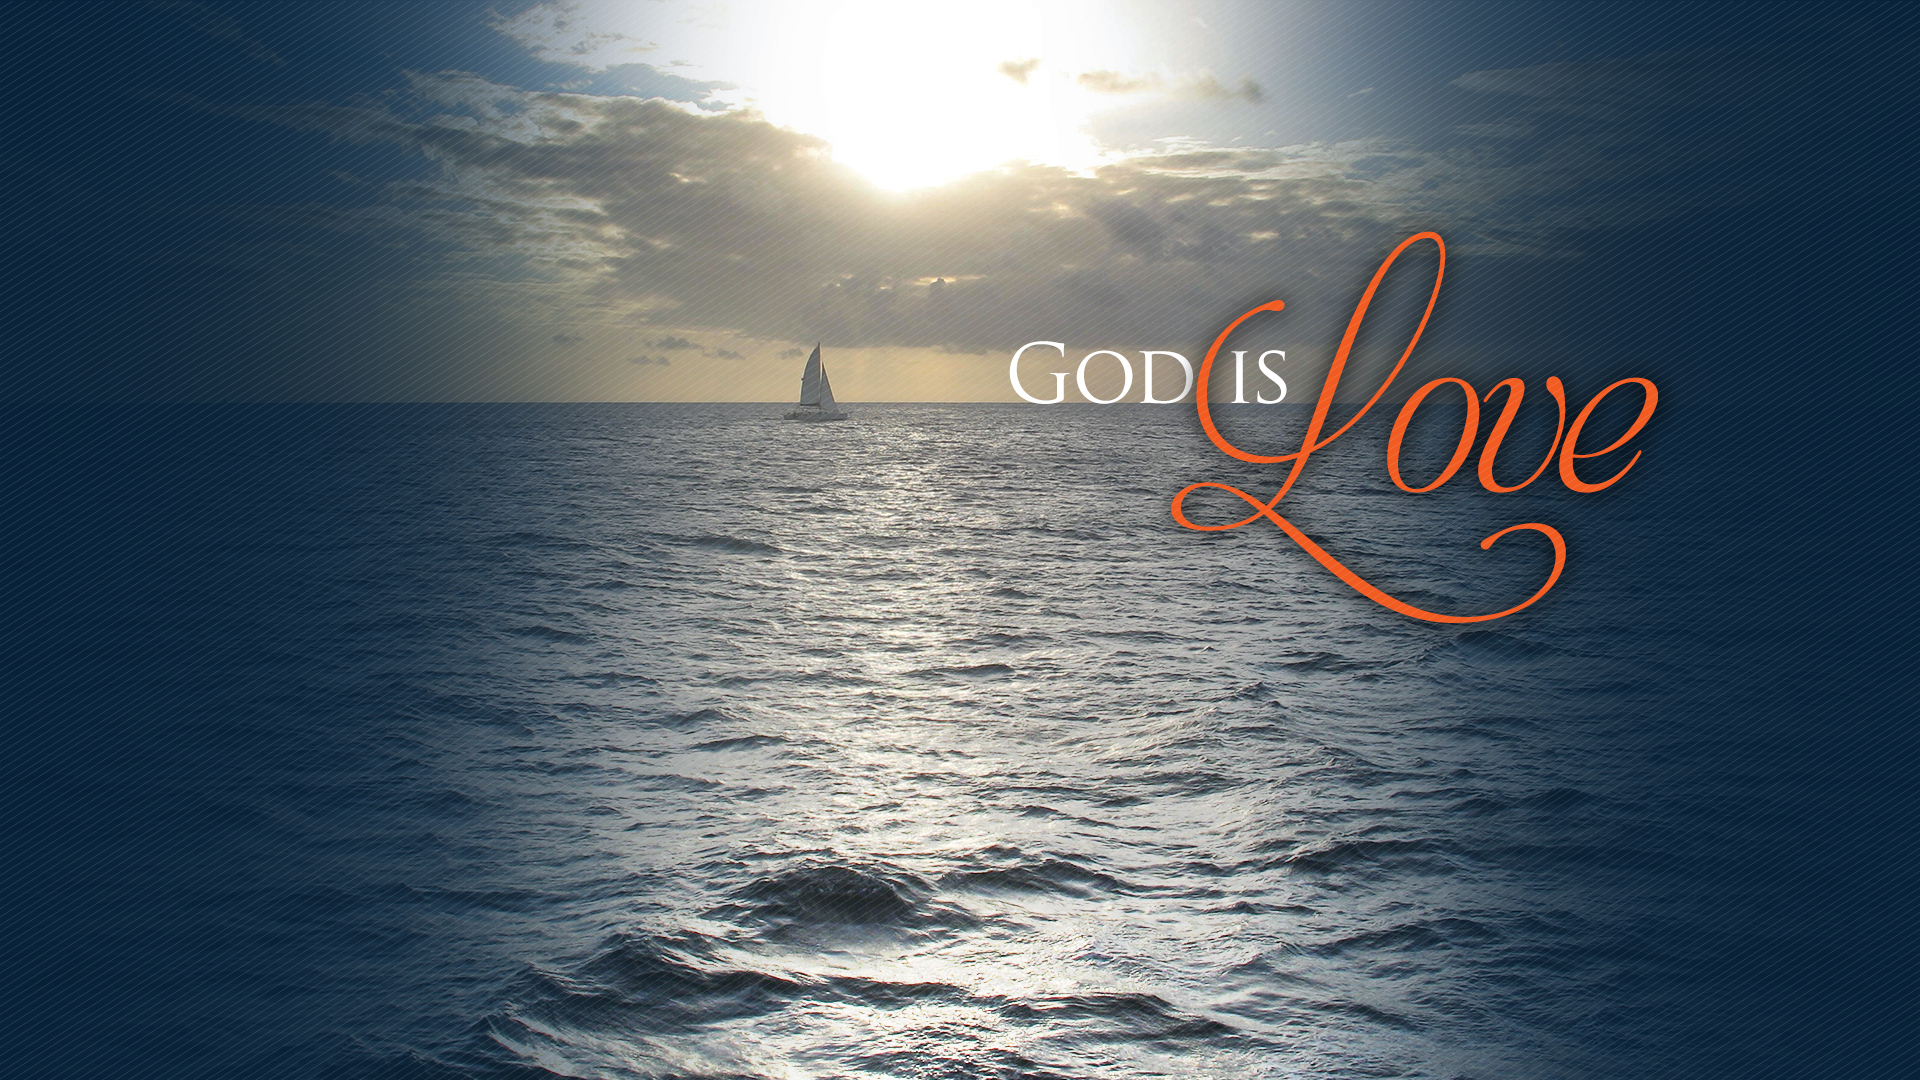 Sailboat–1 John 4:16–Wallpaper